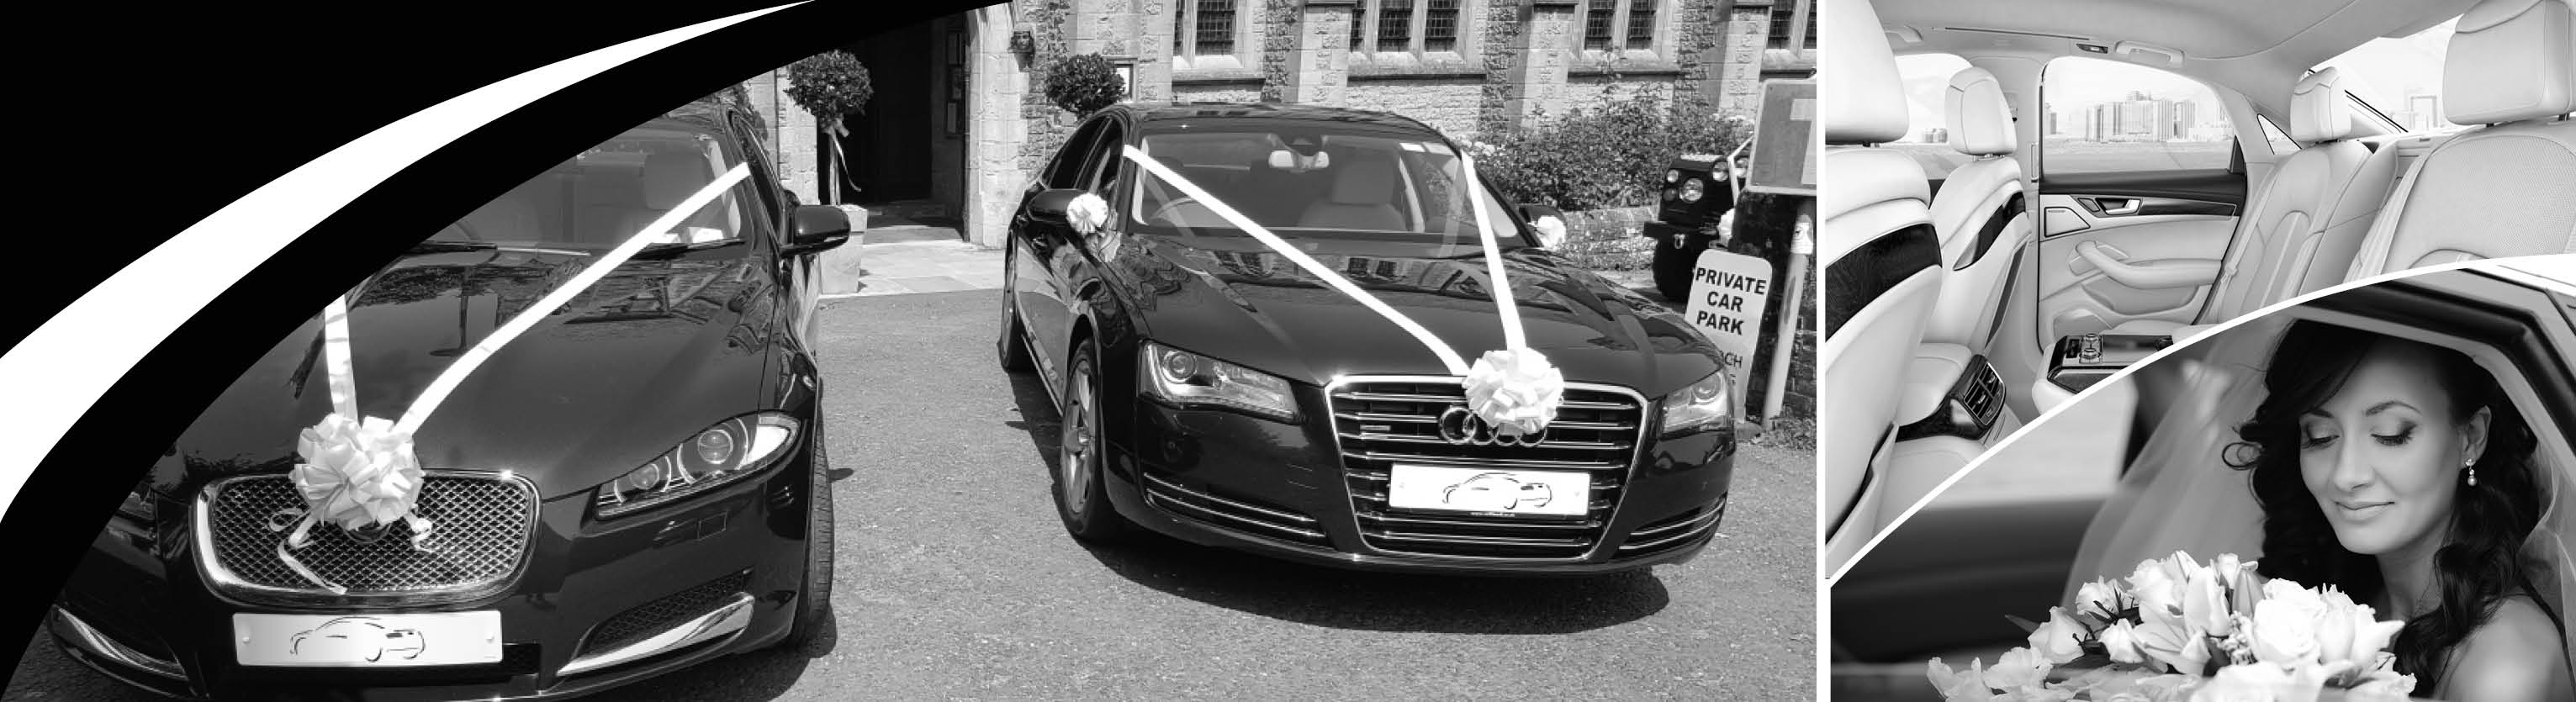 Furlong Chauffeur Services provide Luxury and Executive Cars